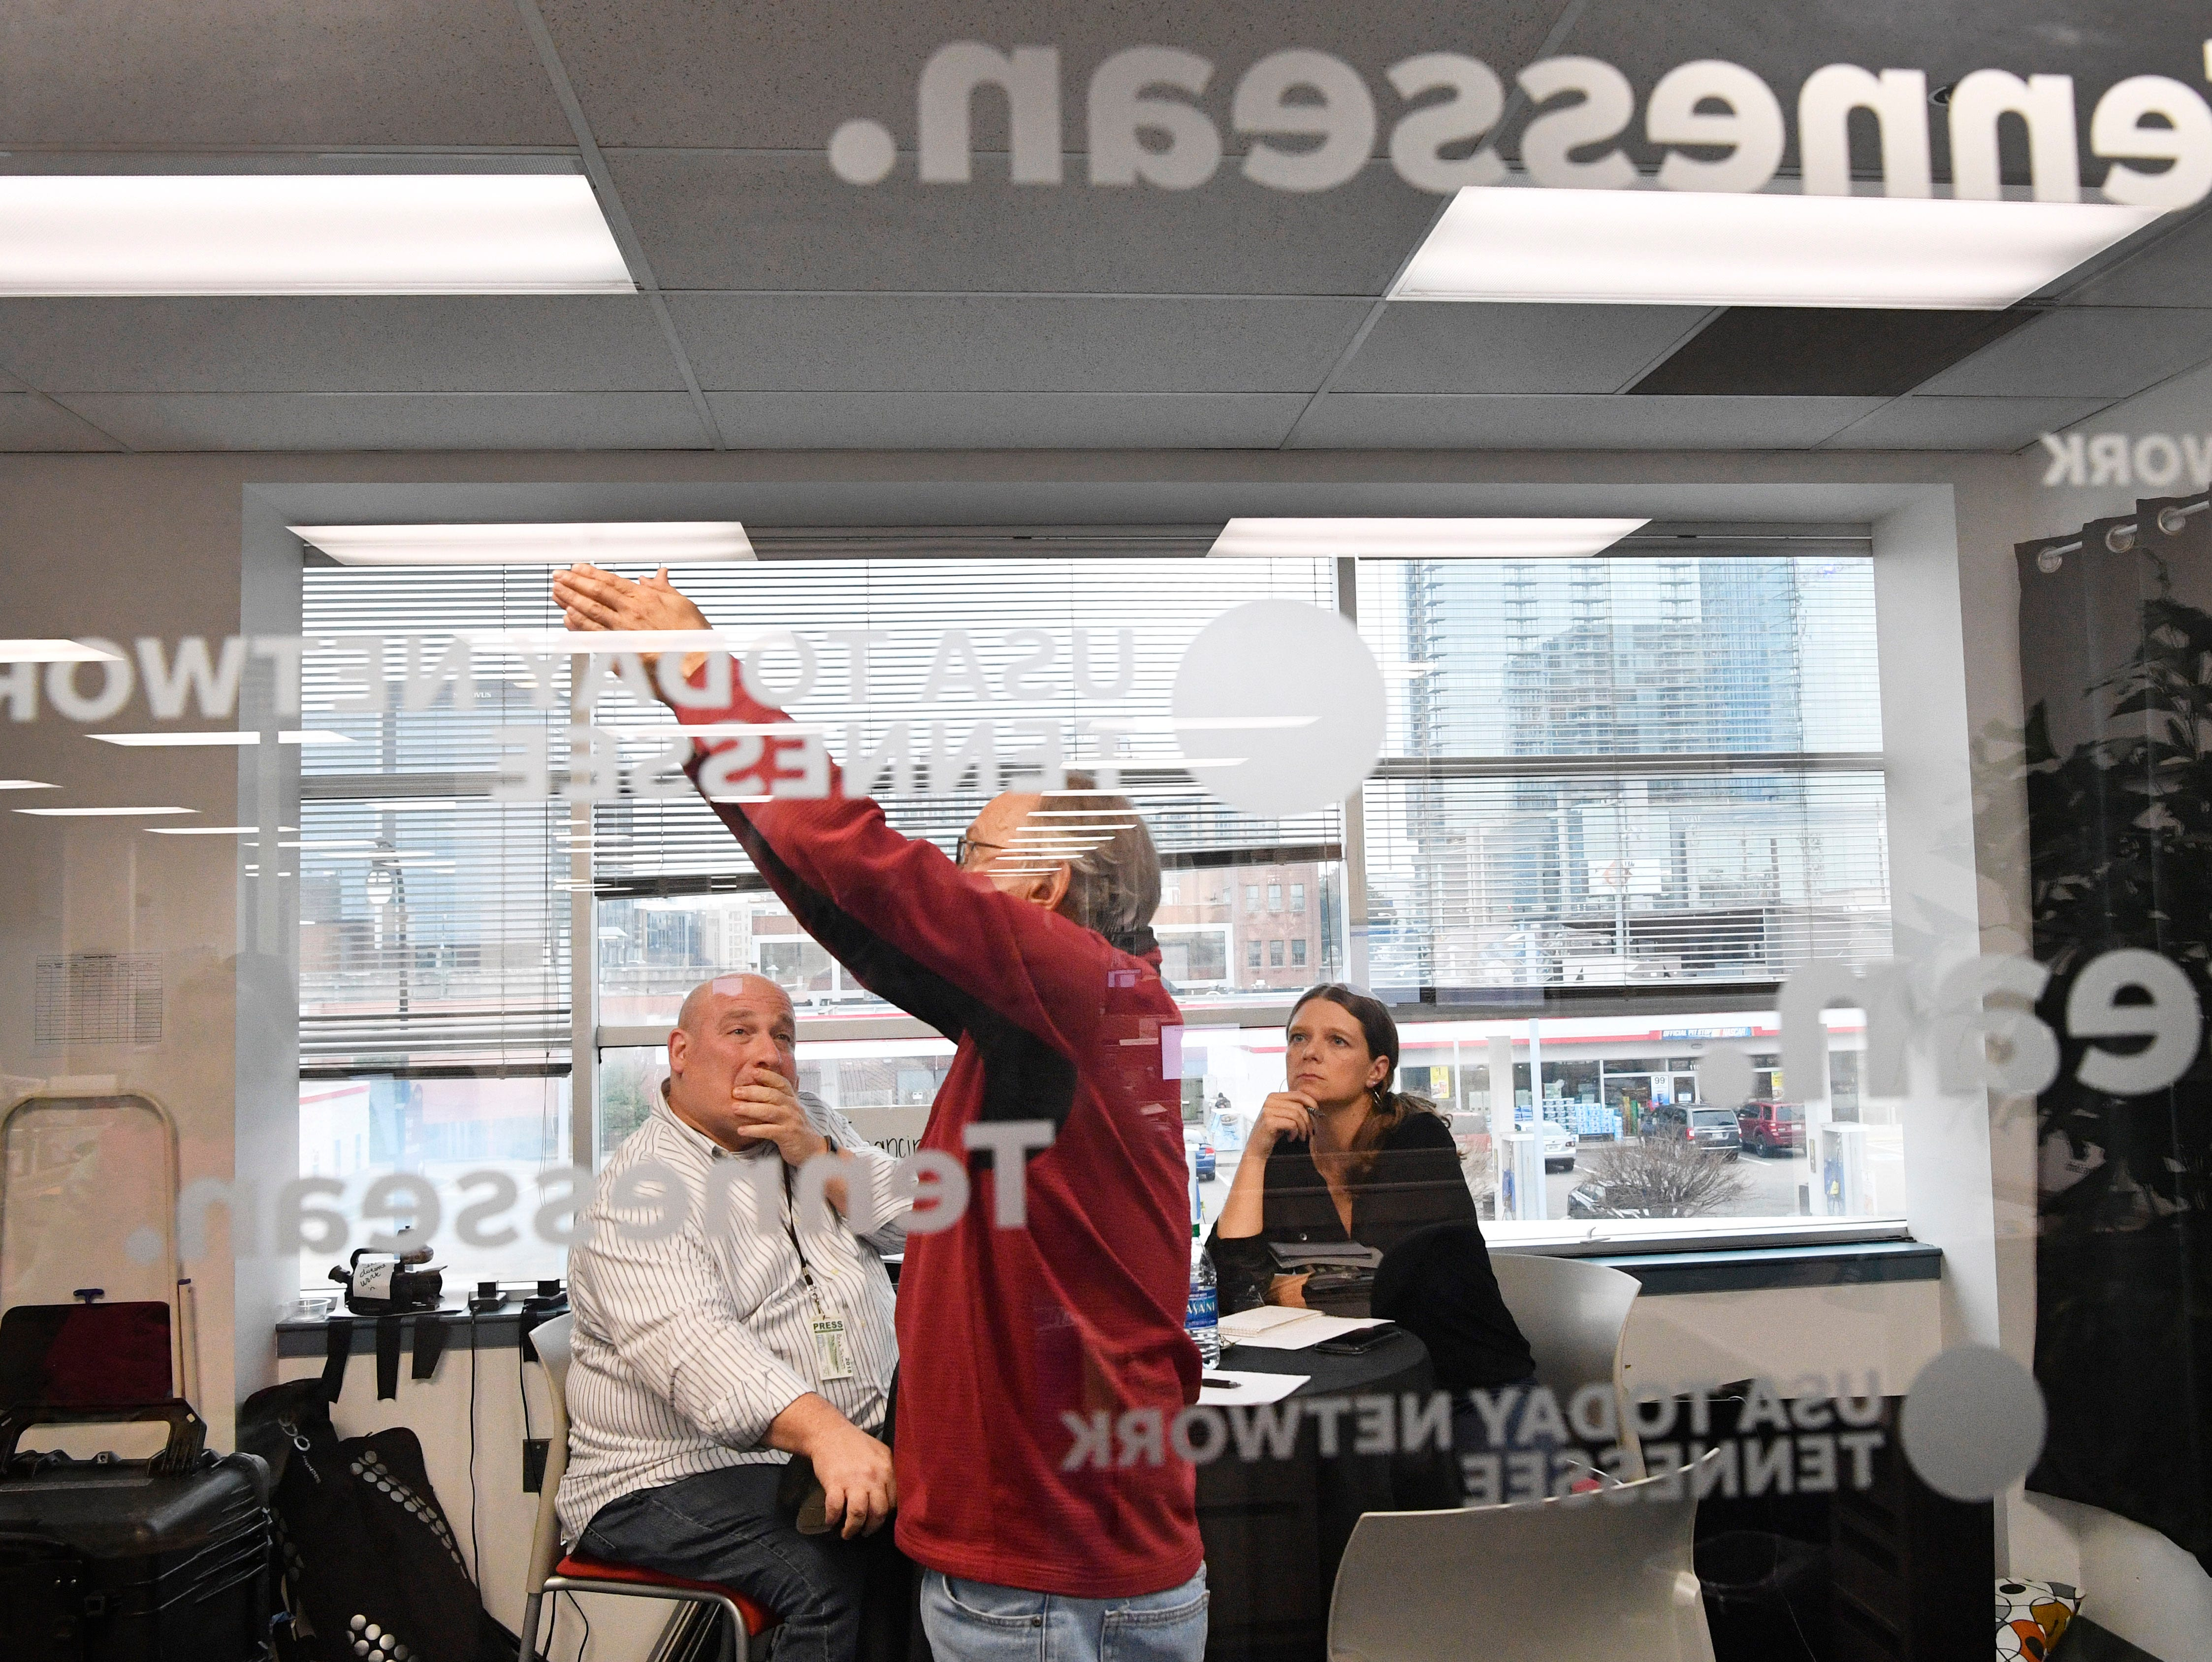 Brad Schmitt and Jessica Bliss interview a subject in The Tennessean newsroom Wednesday, Jan. 2, 2019.